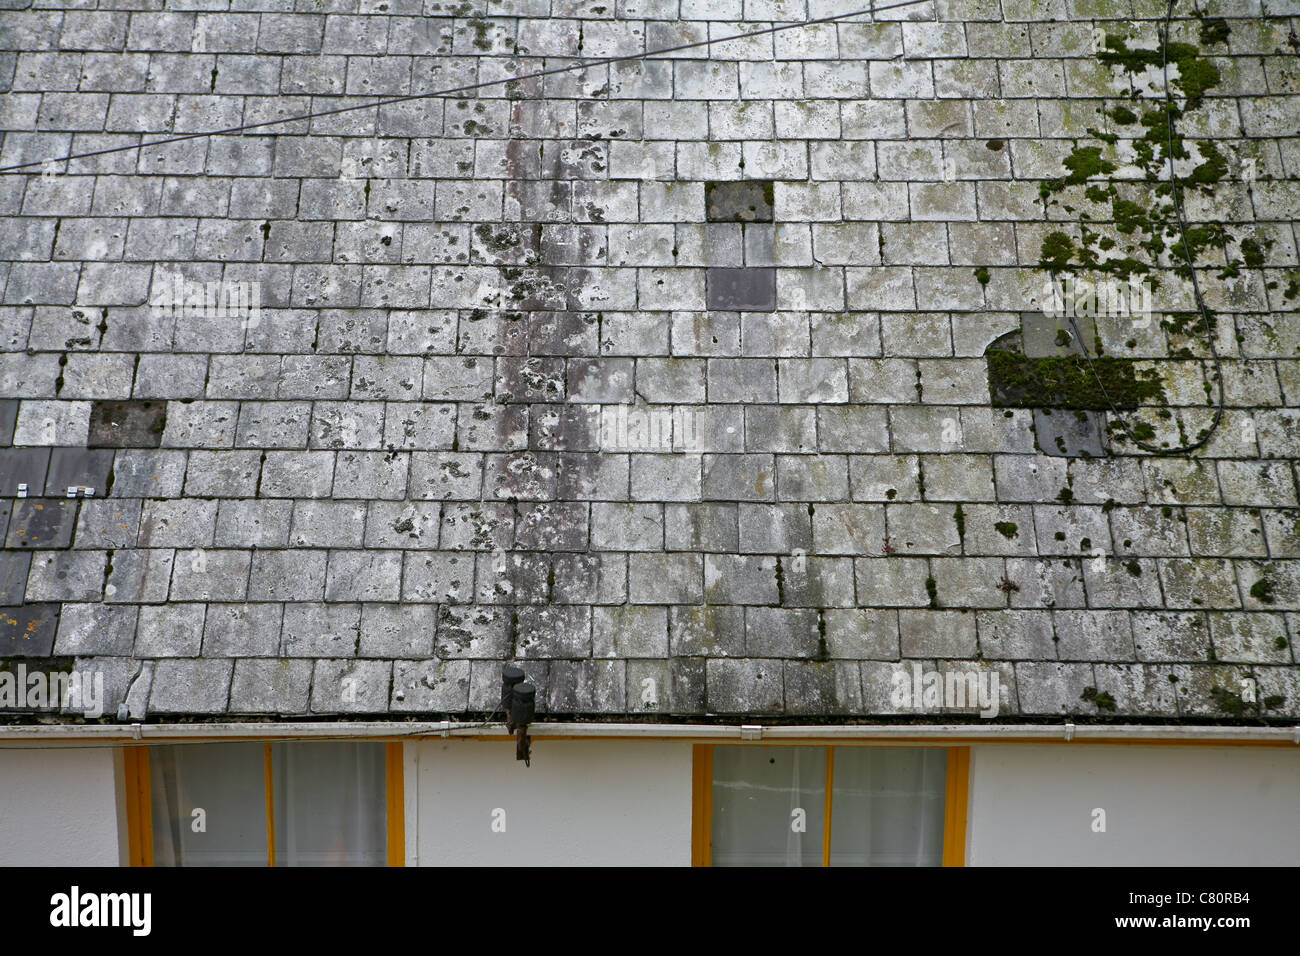 Old discolored slate roof tiles Stock Photo: 39356328 - Alamy